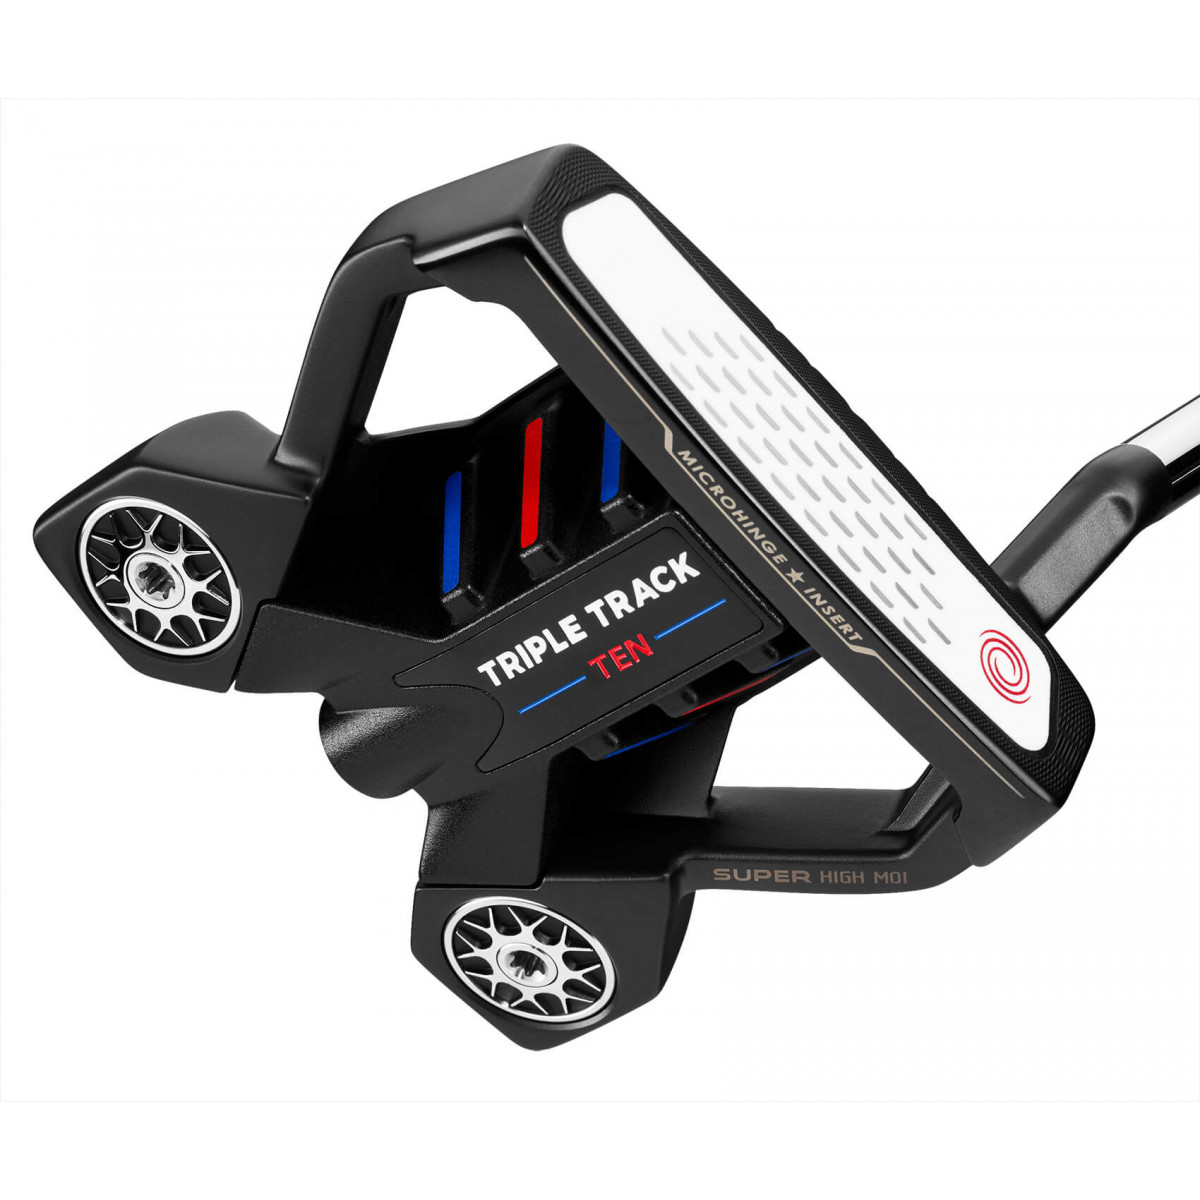 Odyssey Stroke Lab Triple Track Left Hand Putters